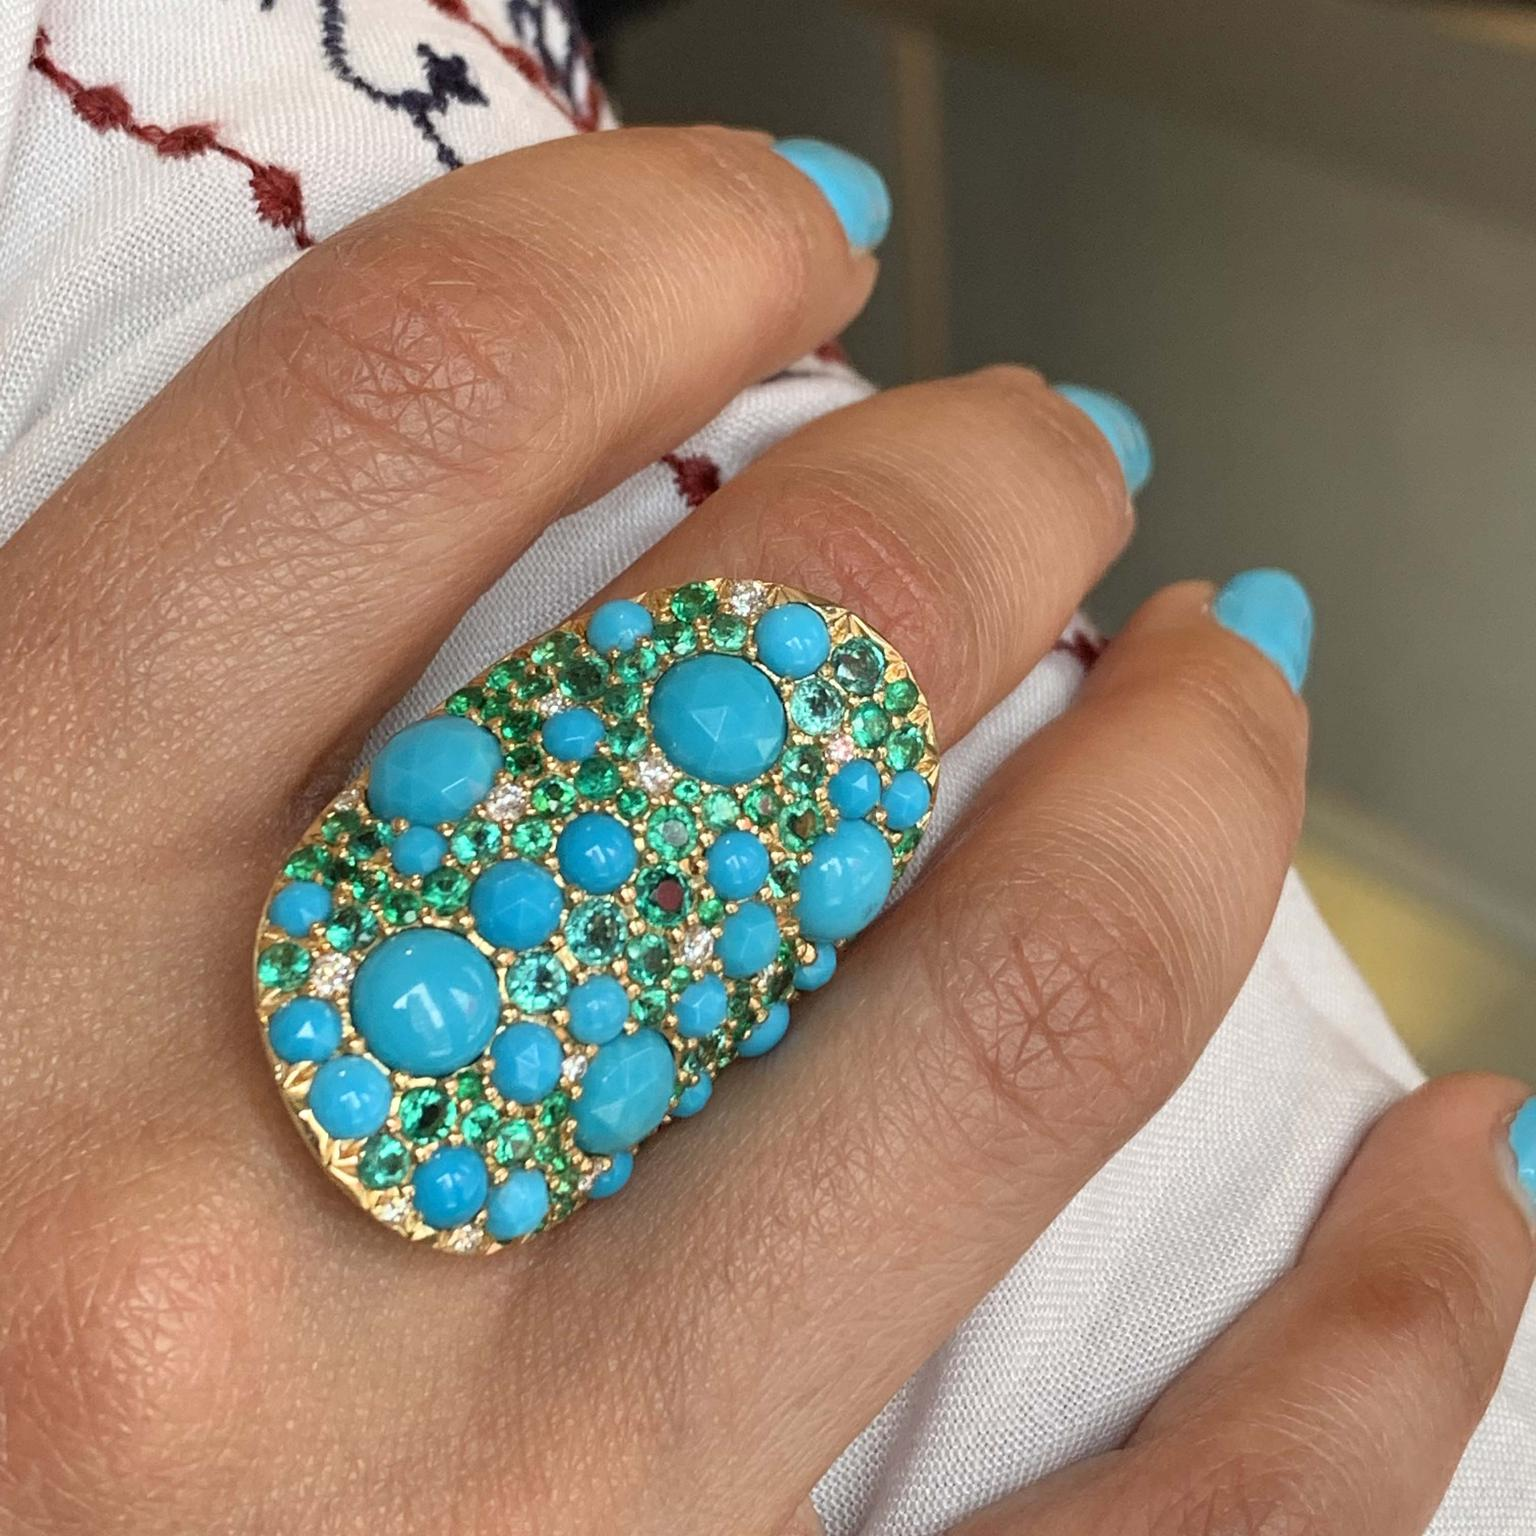 Vault ring from Robinson Pelham with turquoise